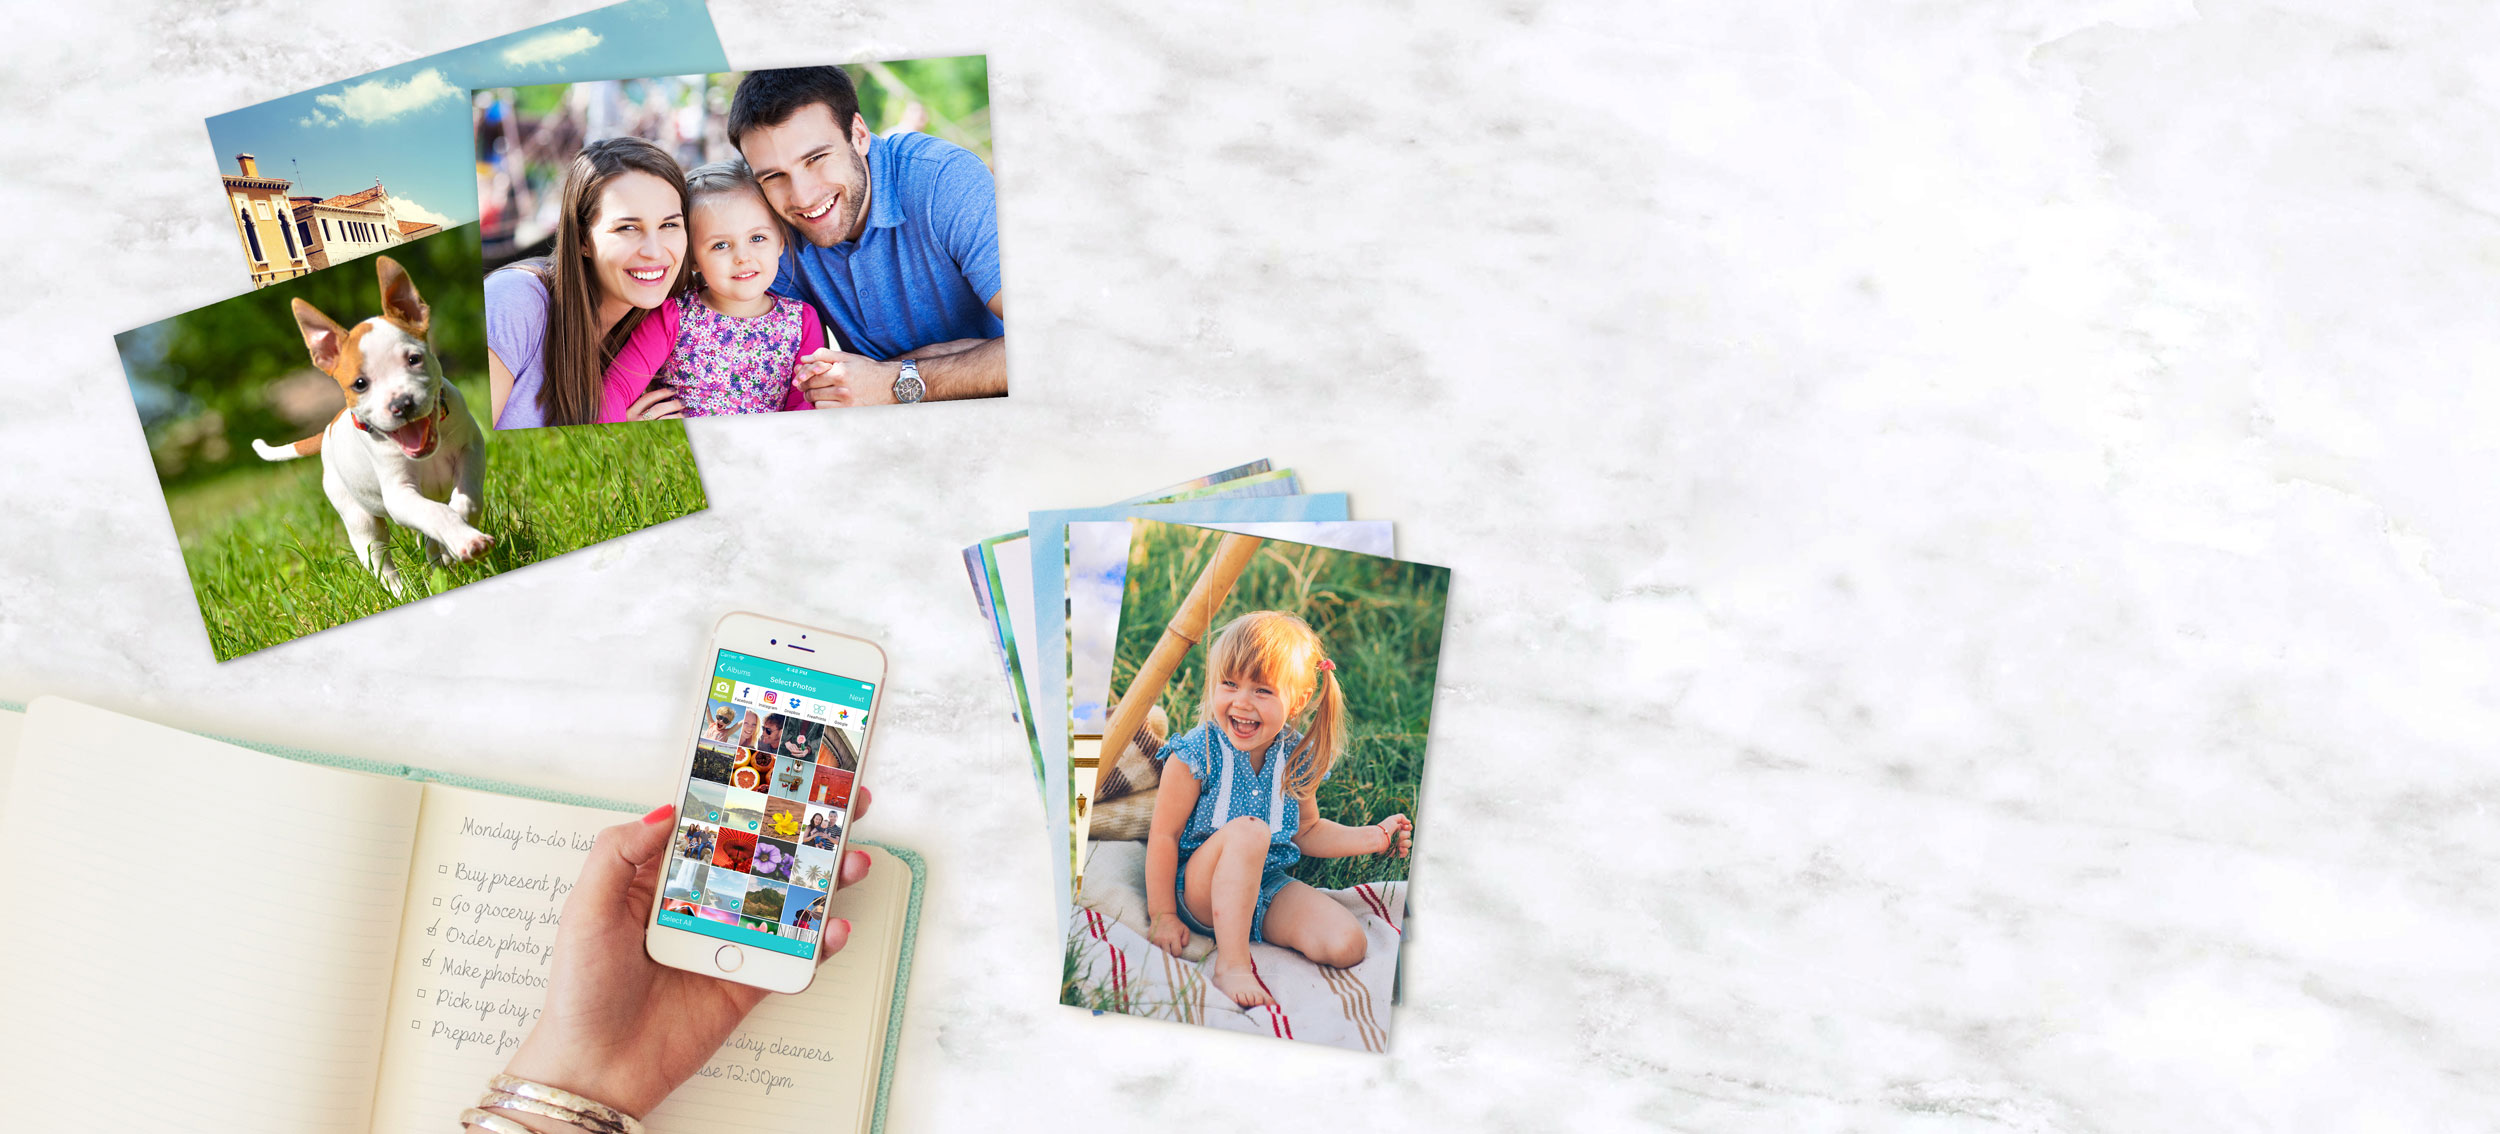 GET UP TO 1,000 FREE 4X6 PHOTO PRINTS